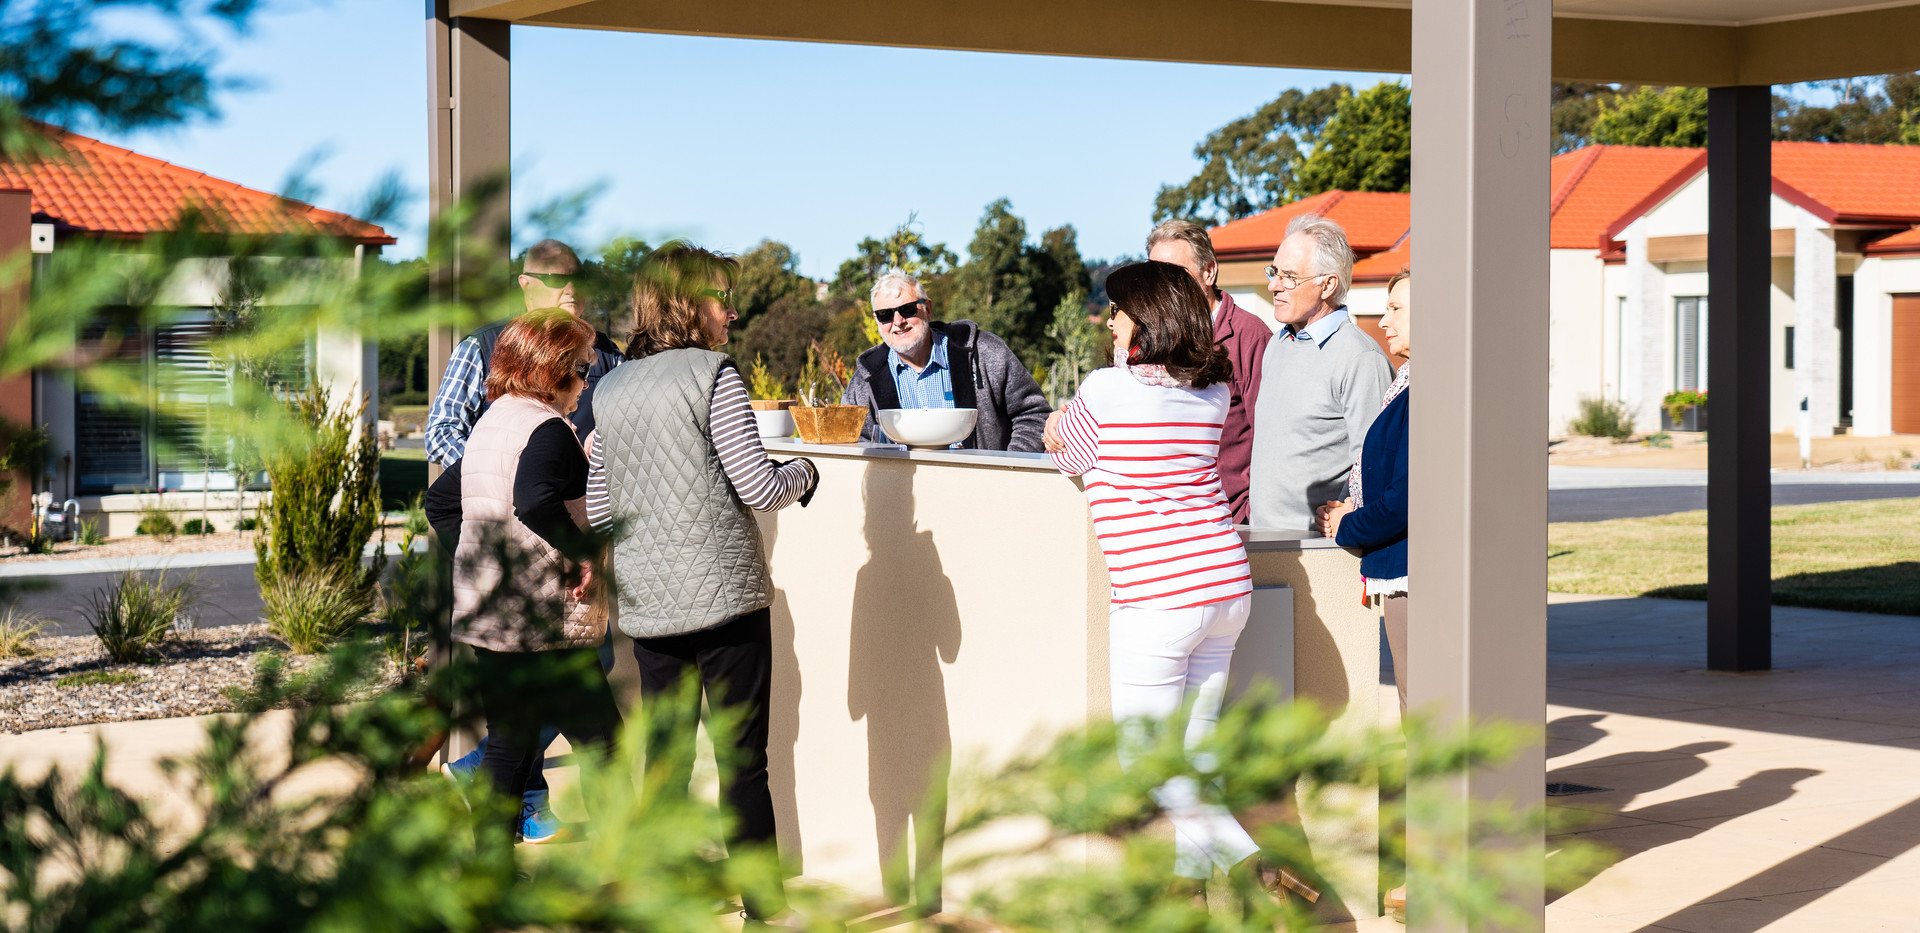 residents using the comunal barbeque area as part of the premium facilities on offer at La Dimora Retirement Village